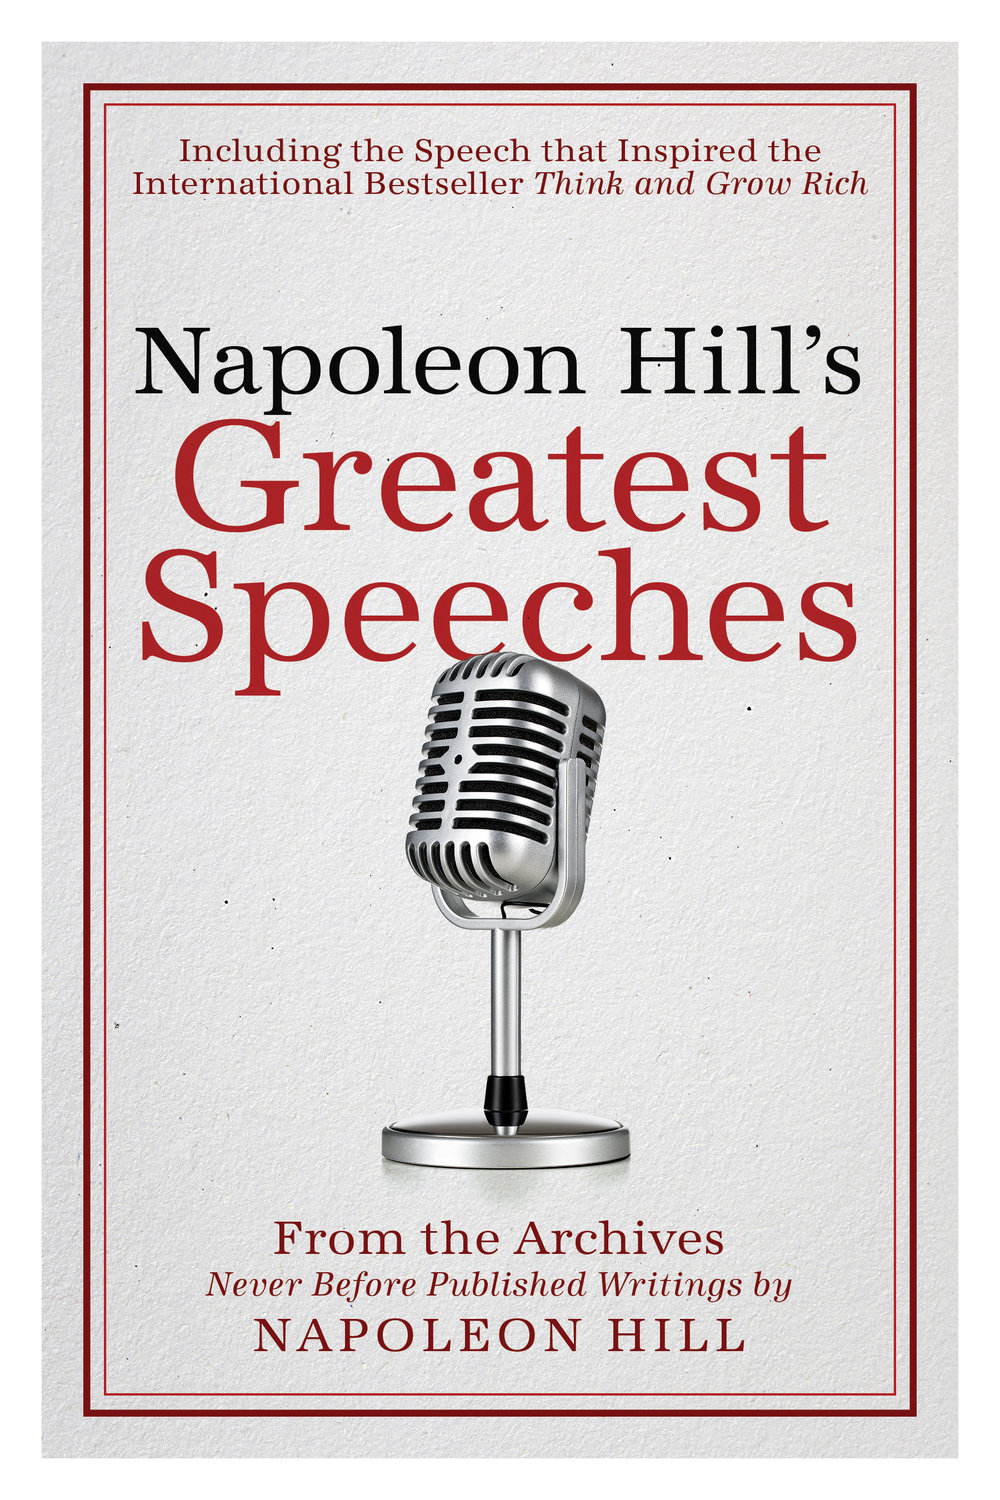 Napoleon_Hill's_Greatest_Speeches.jpg